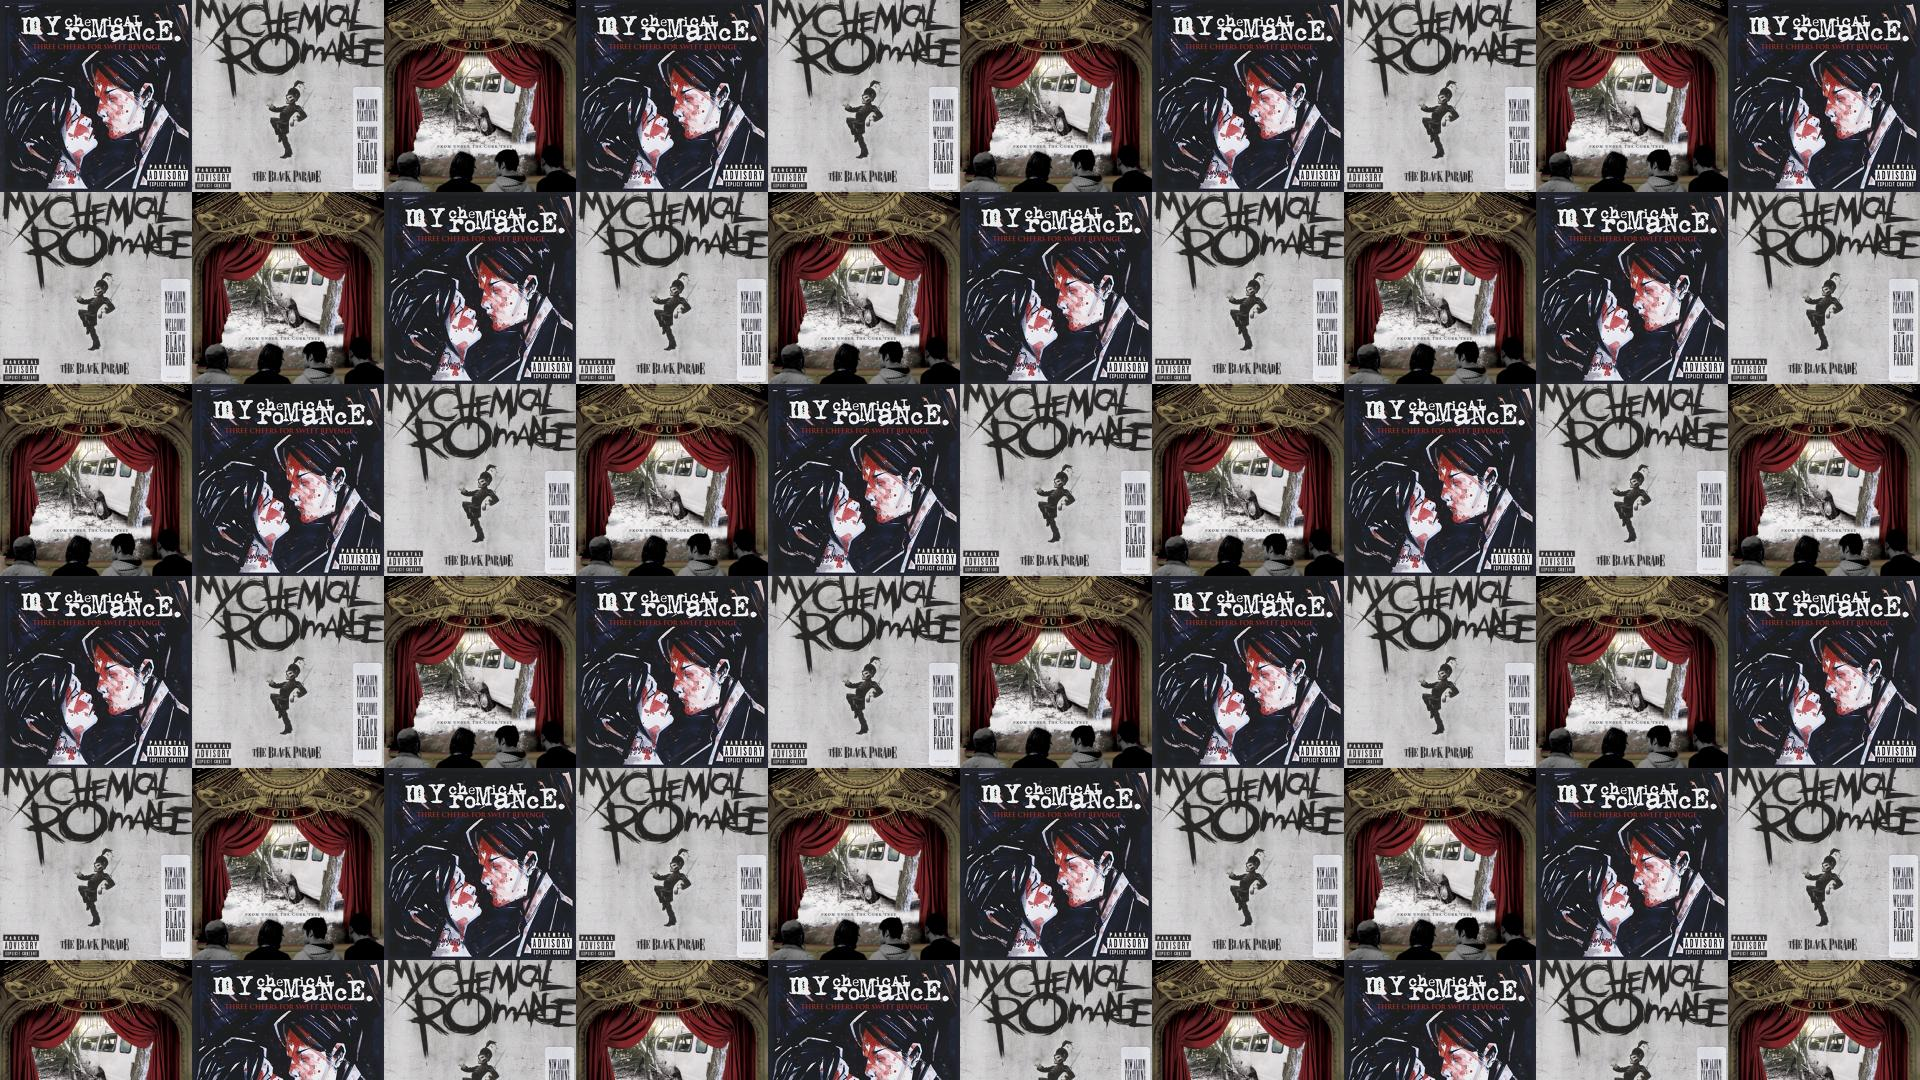 Fall Out Boy Quotes Wallpaper My Chemical Romance Three Cheers For Sweet Revenge